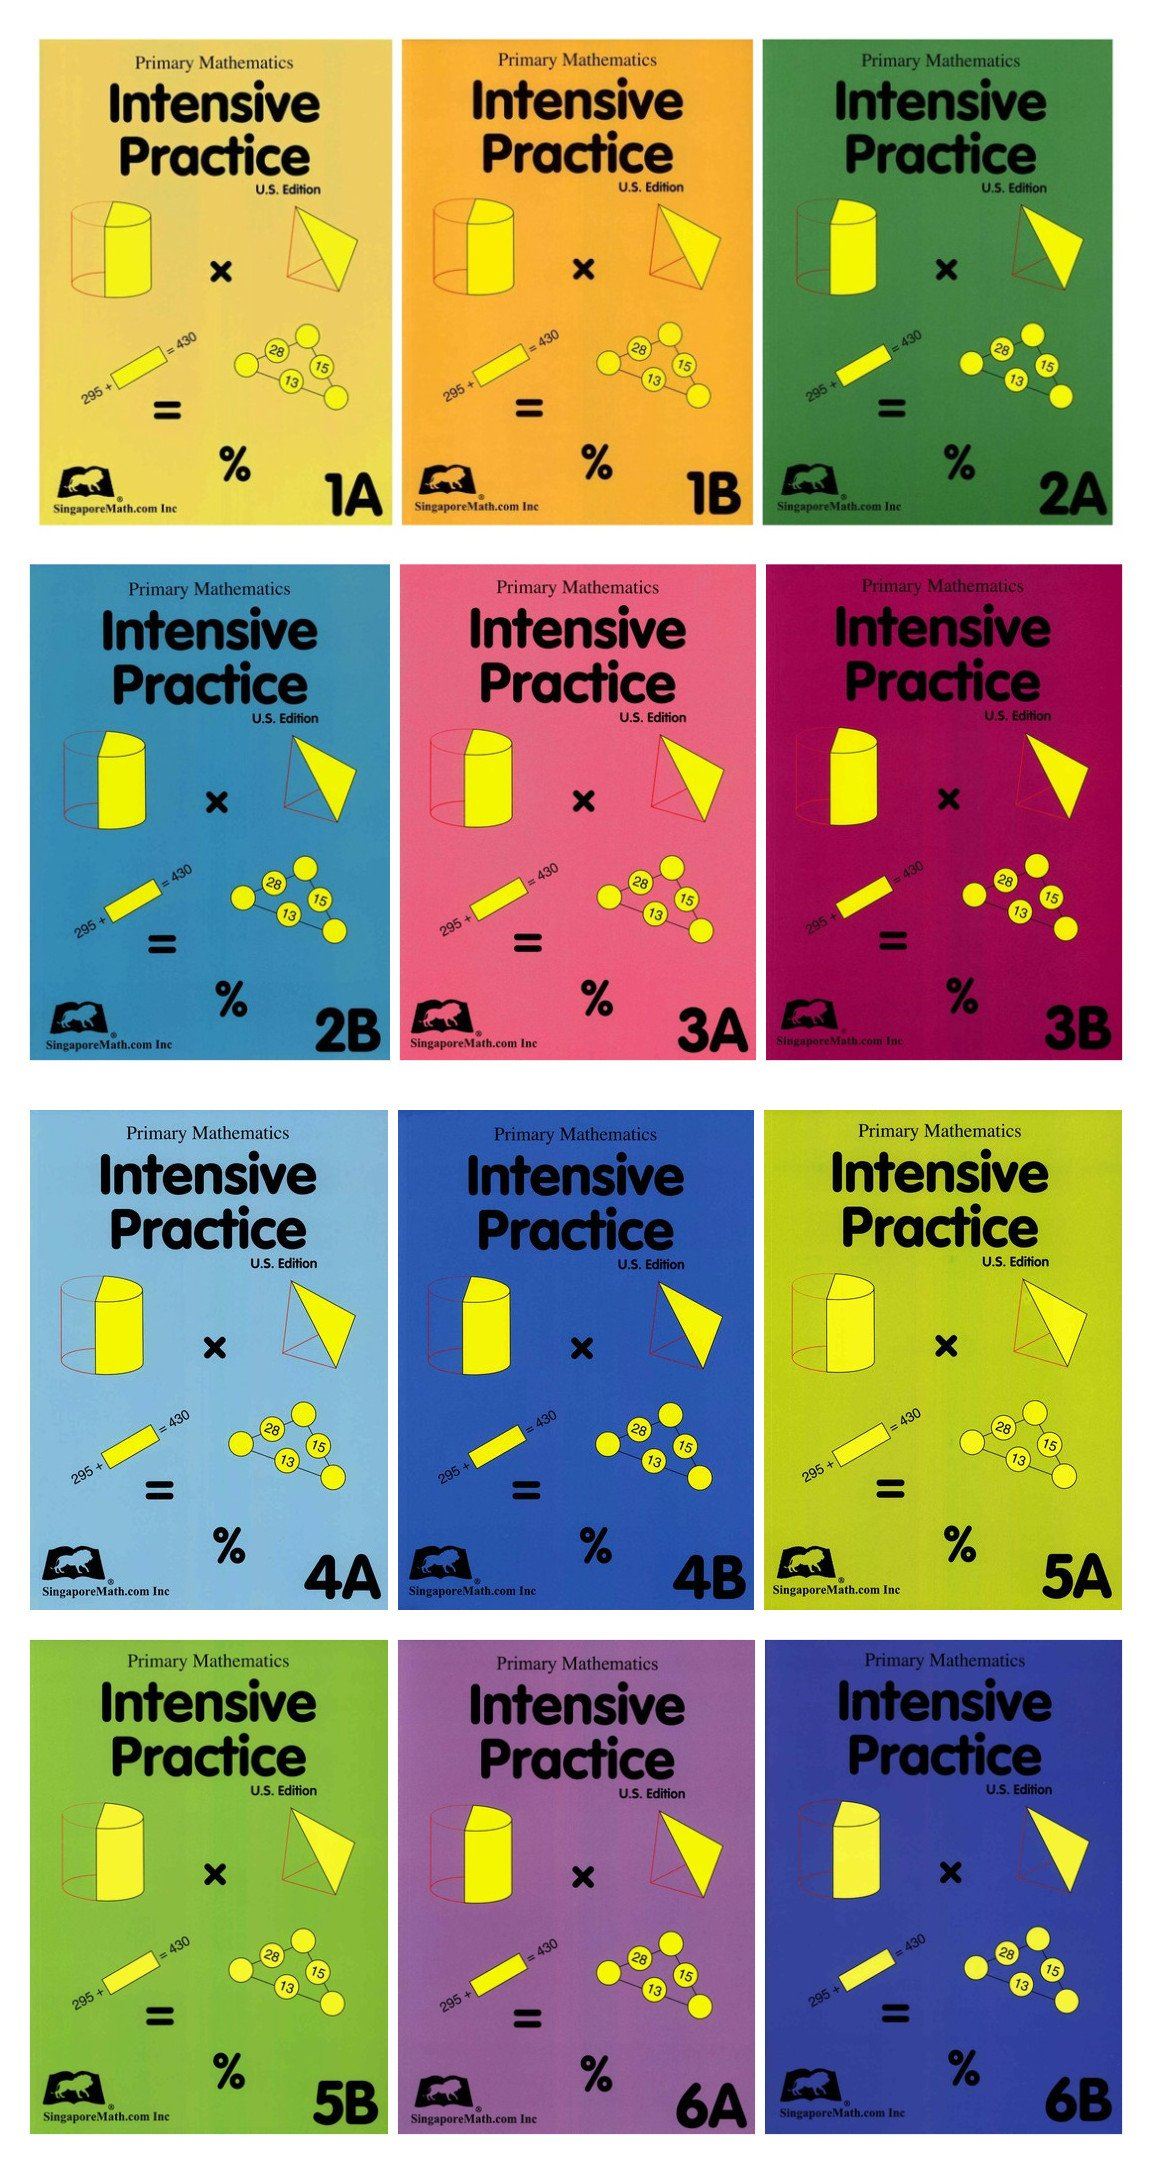 Download Primary Math Intensive Practice 12 Books Set: 1A, 1B, 2A, 2B, 3A, 3B, 4A, 4B, 5A, 5B, 6A, 6B PDF